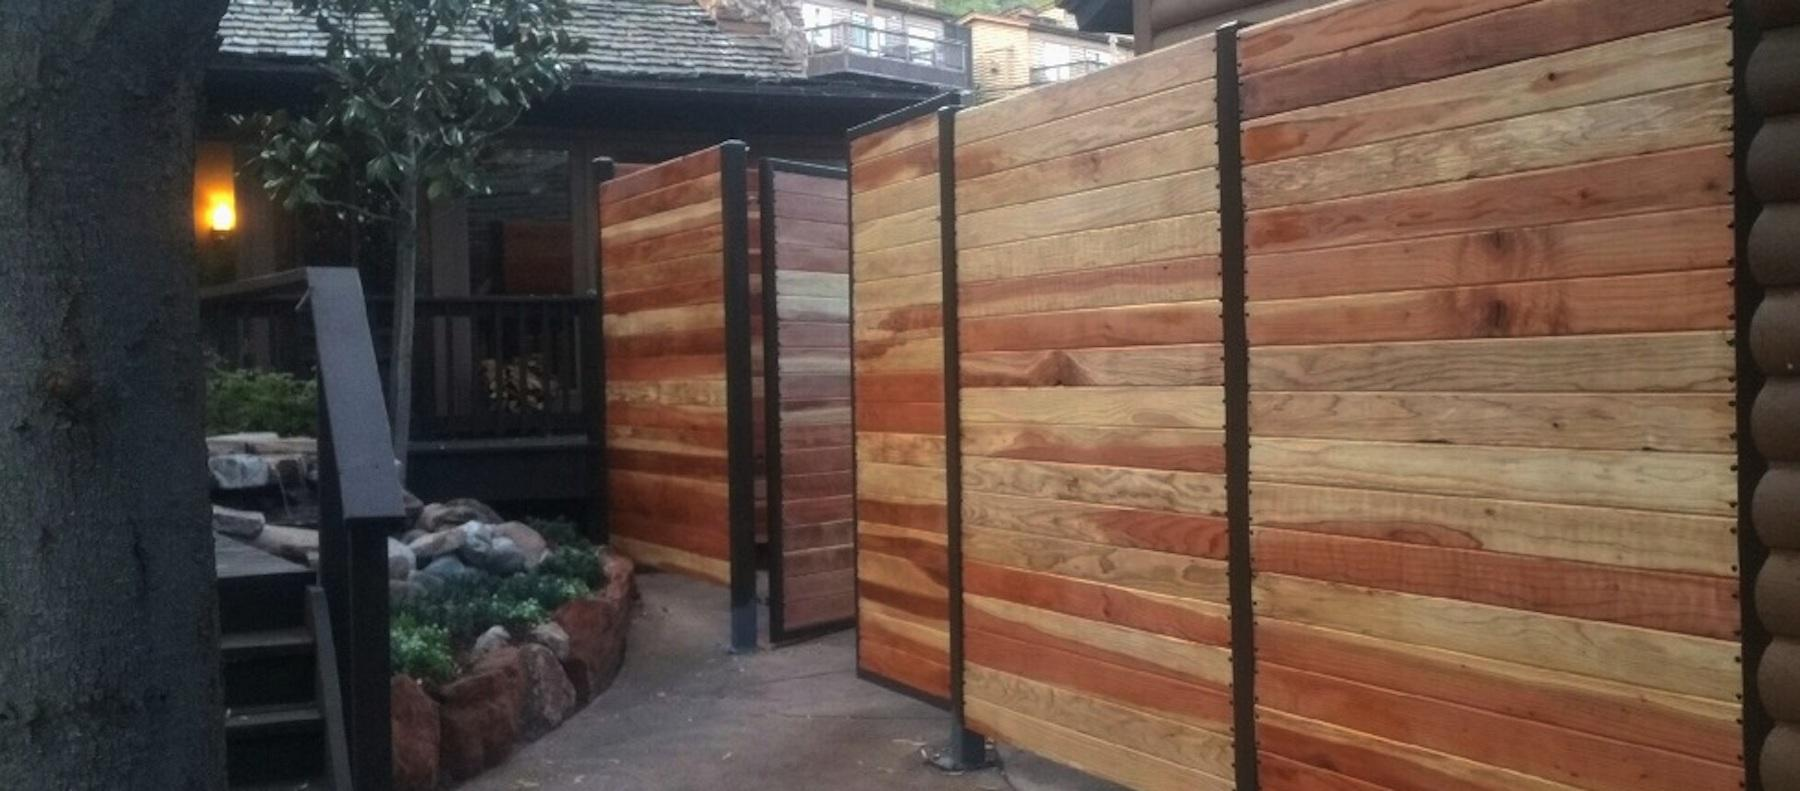 2 LAuberge Hotel Industrial Fencing by Empire Fence Phoenix AZ